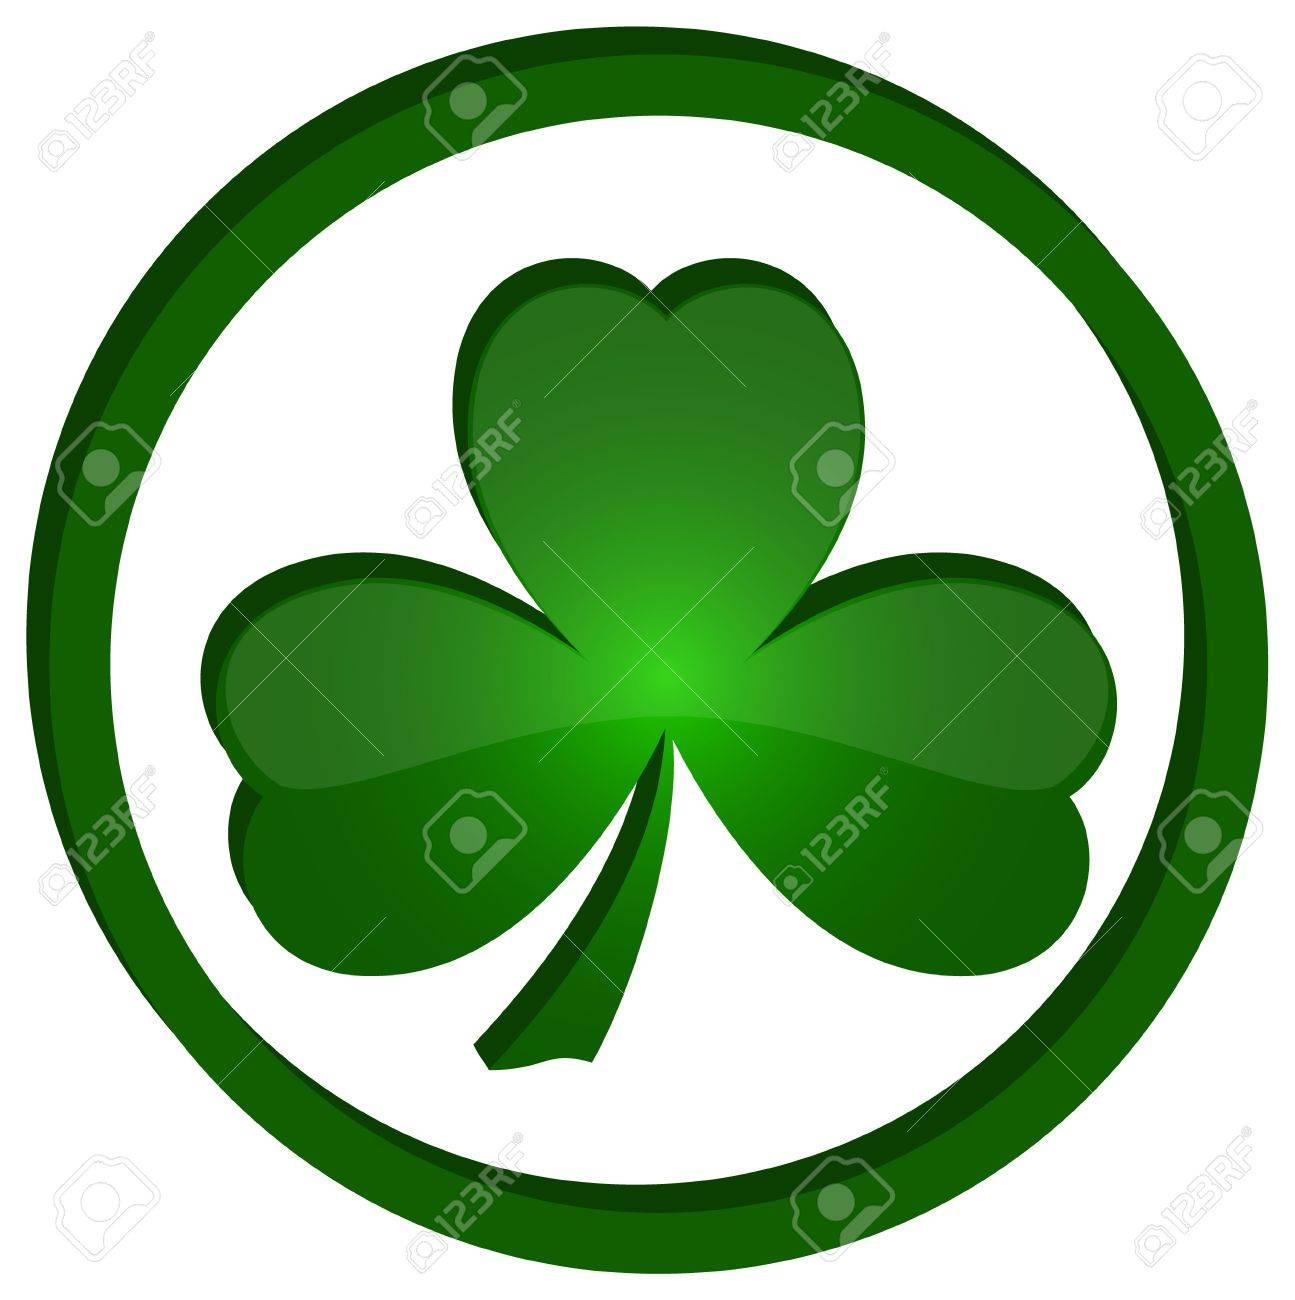 Green Shamrock As A Symbol Of St Patricks Day Isolated On White